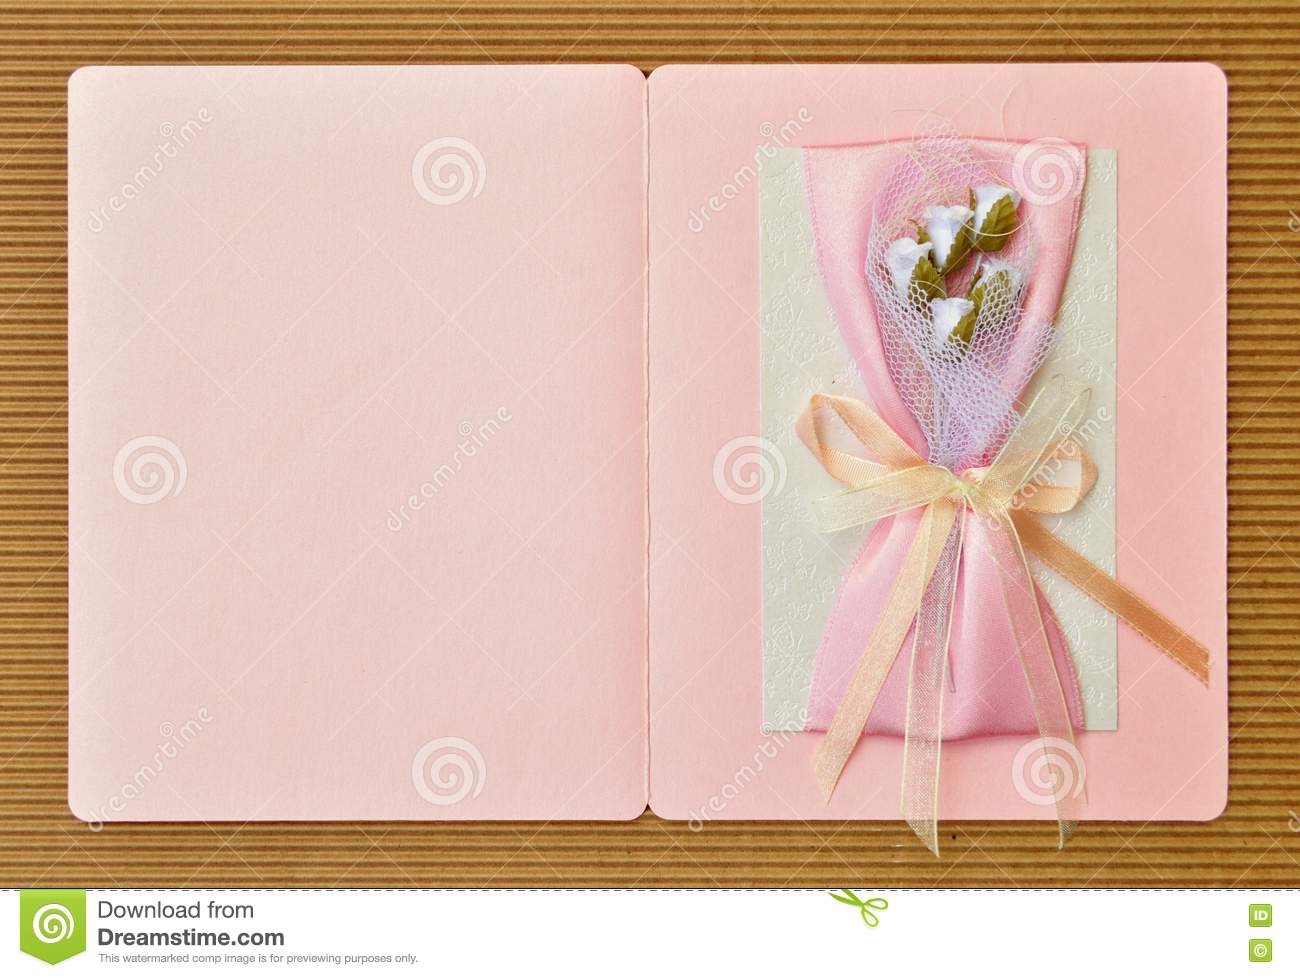 Paper card design handmade stock photo. Image of decor - 24697926